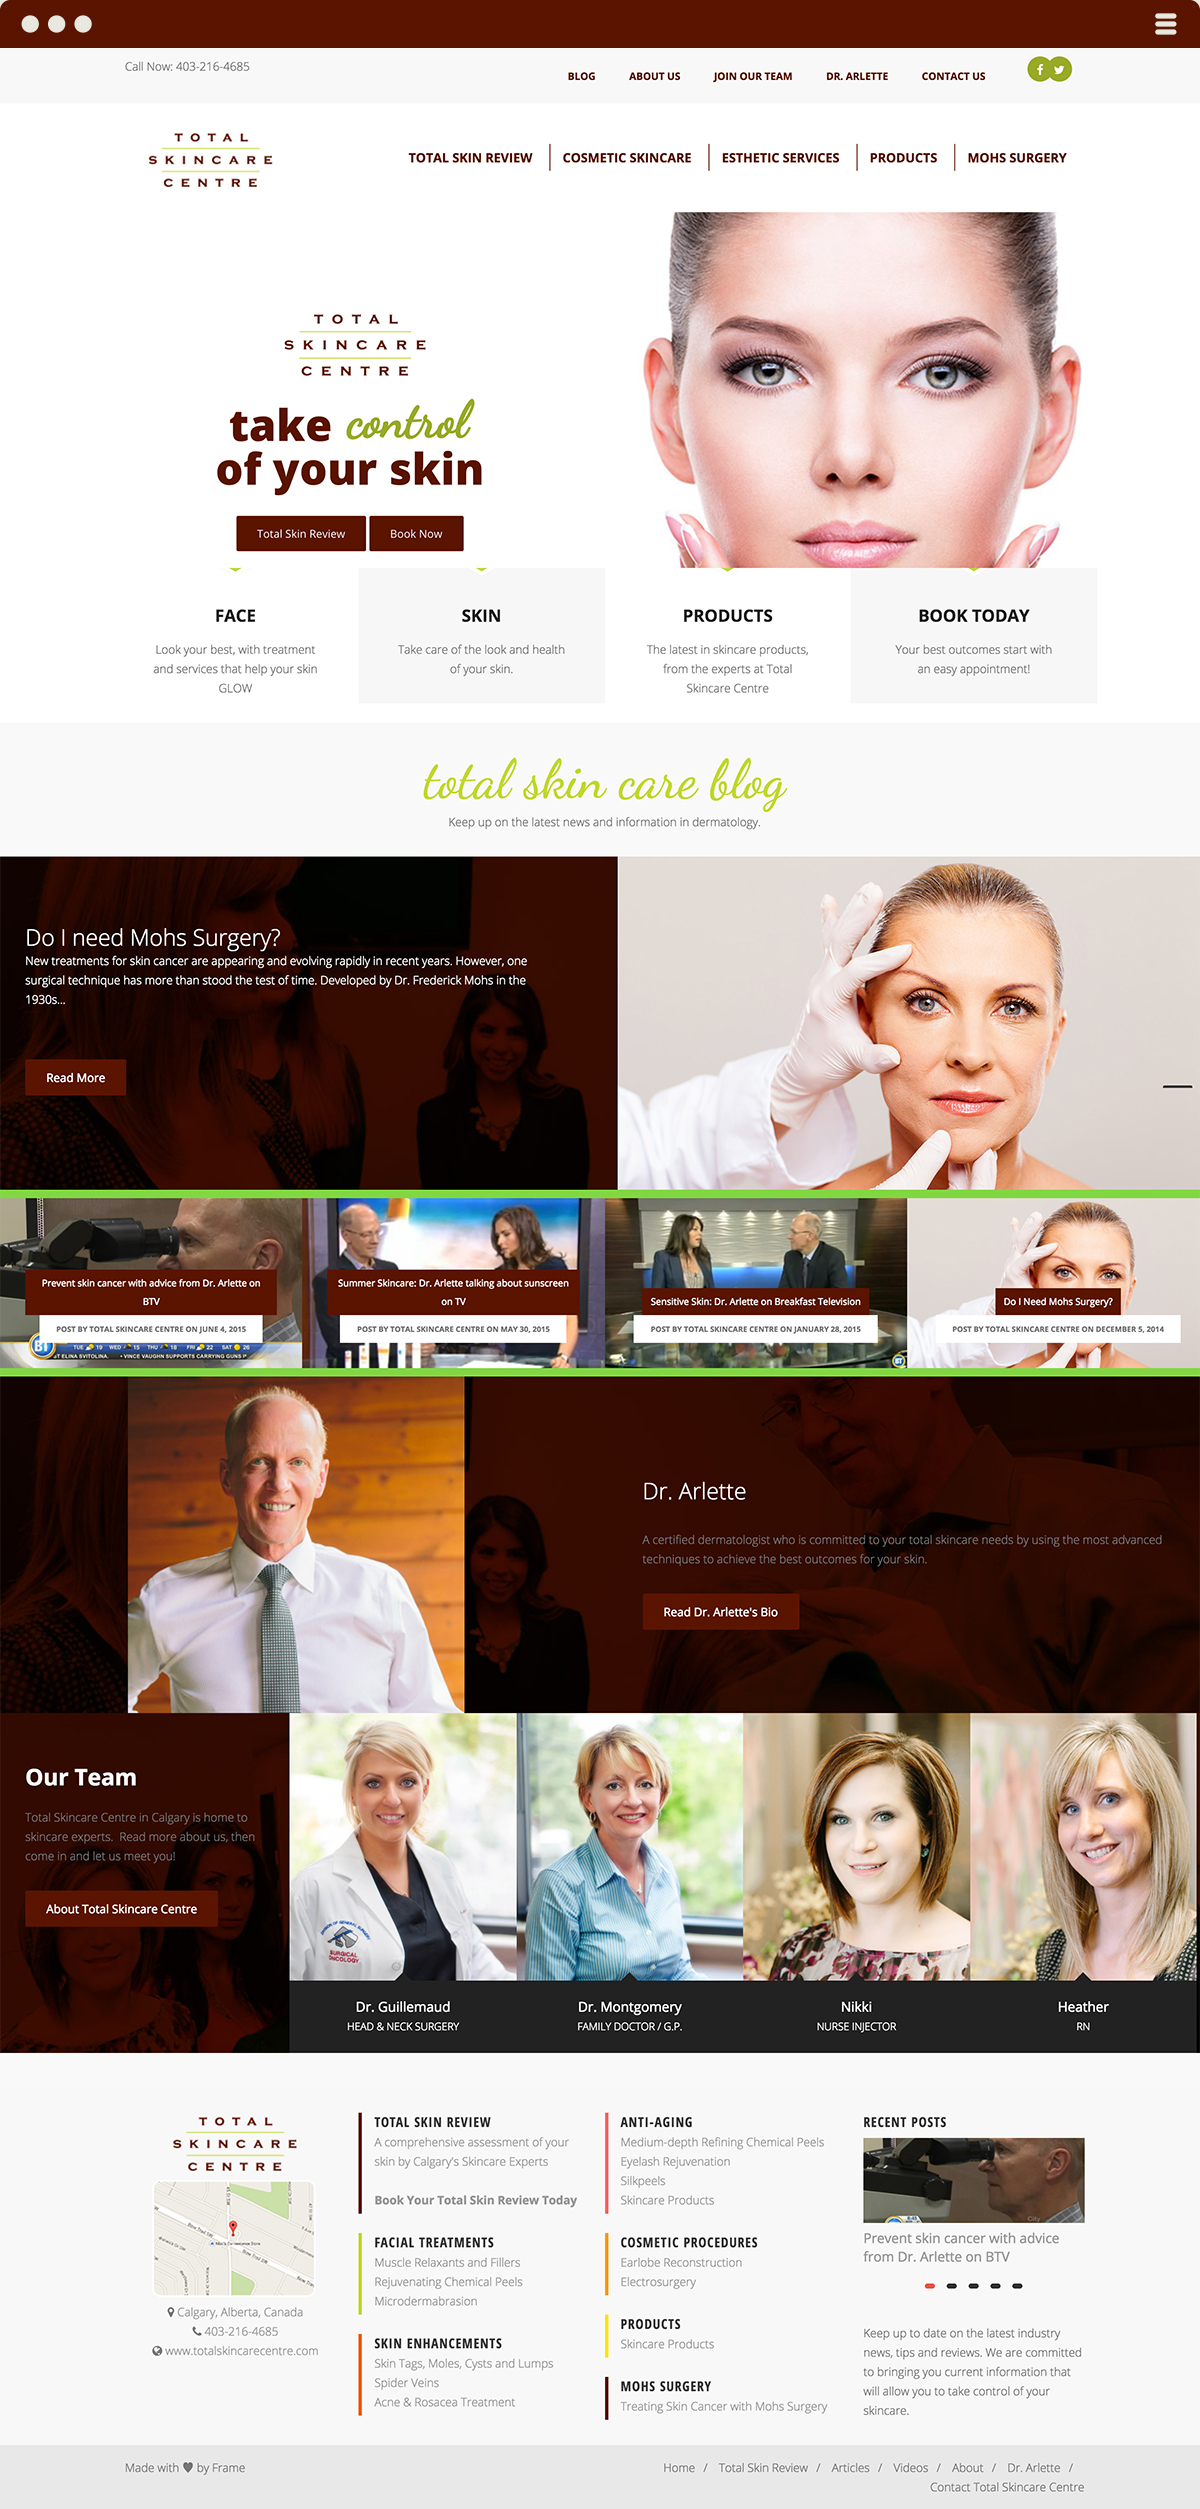 Total SkinCare Centre website design & development by Made By Frame